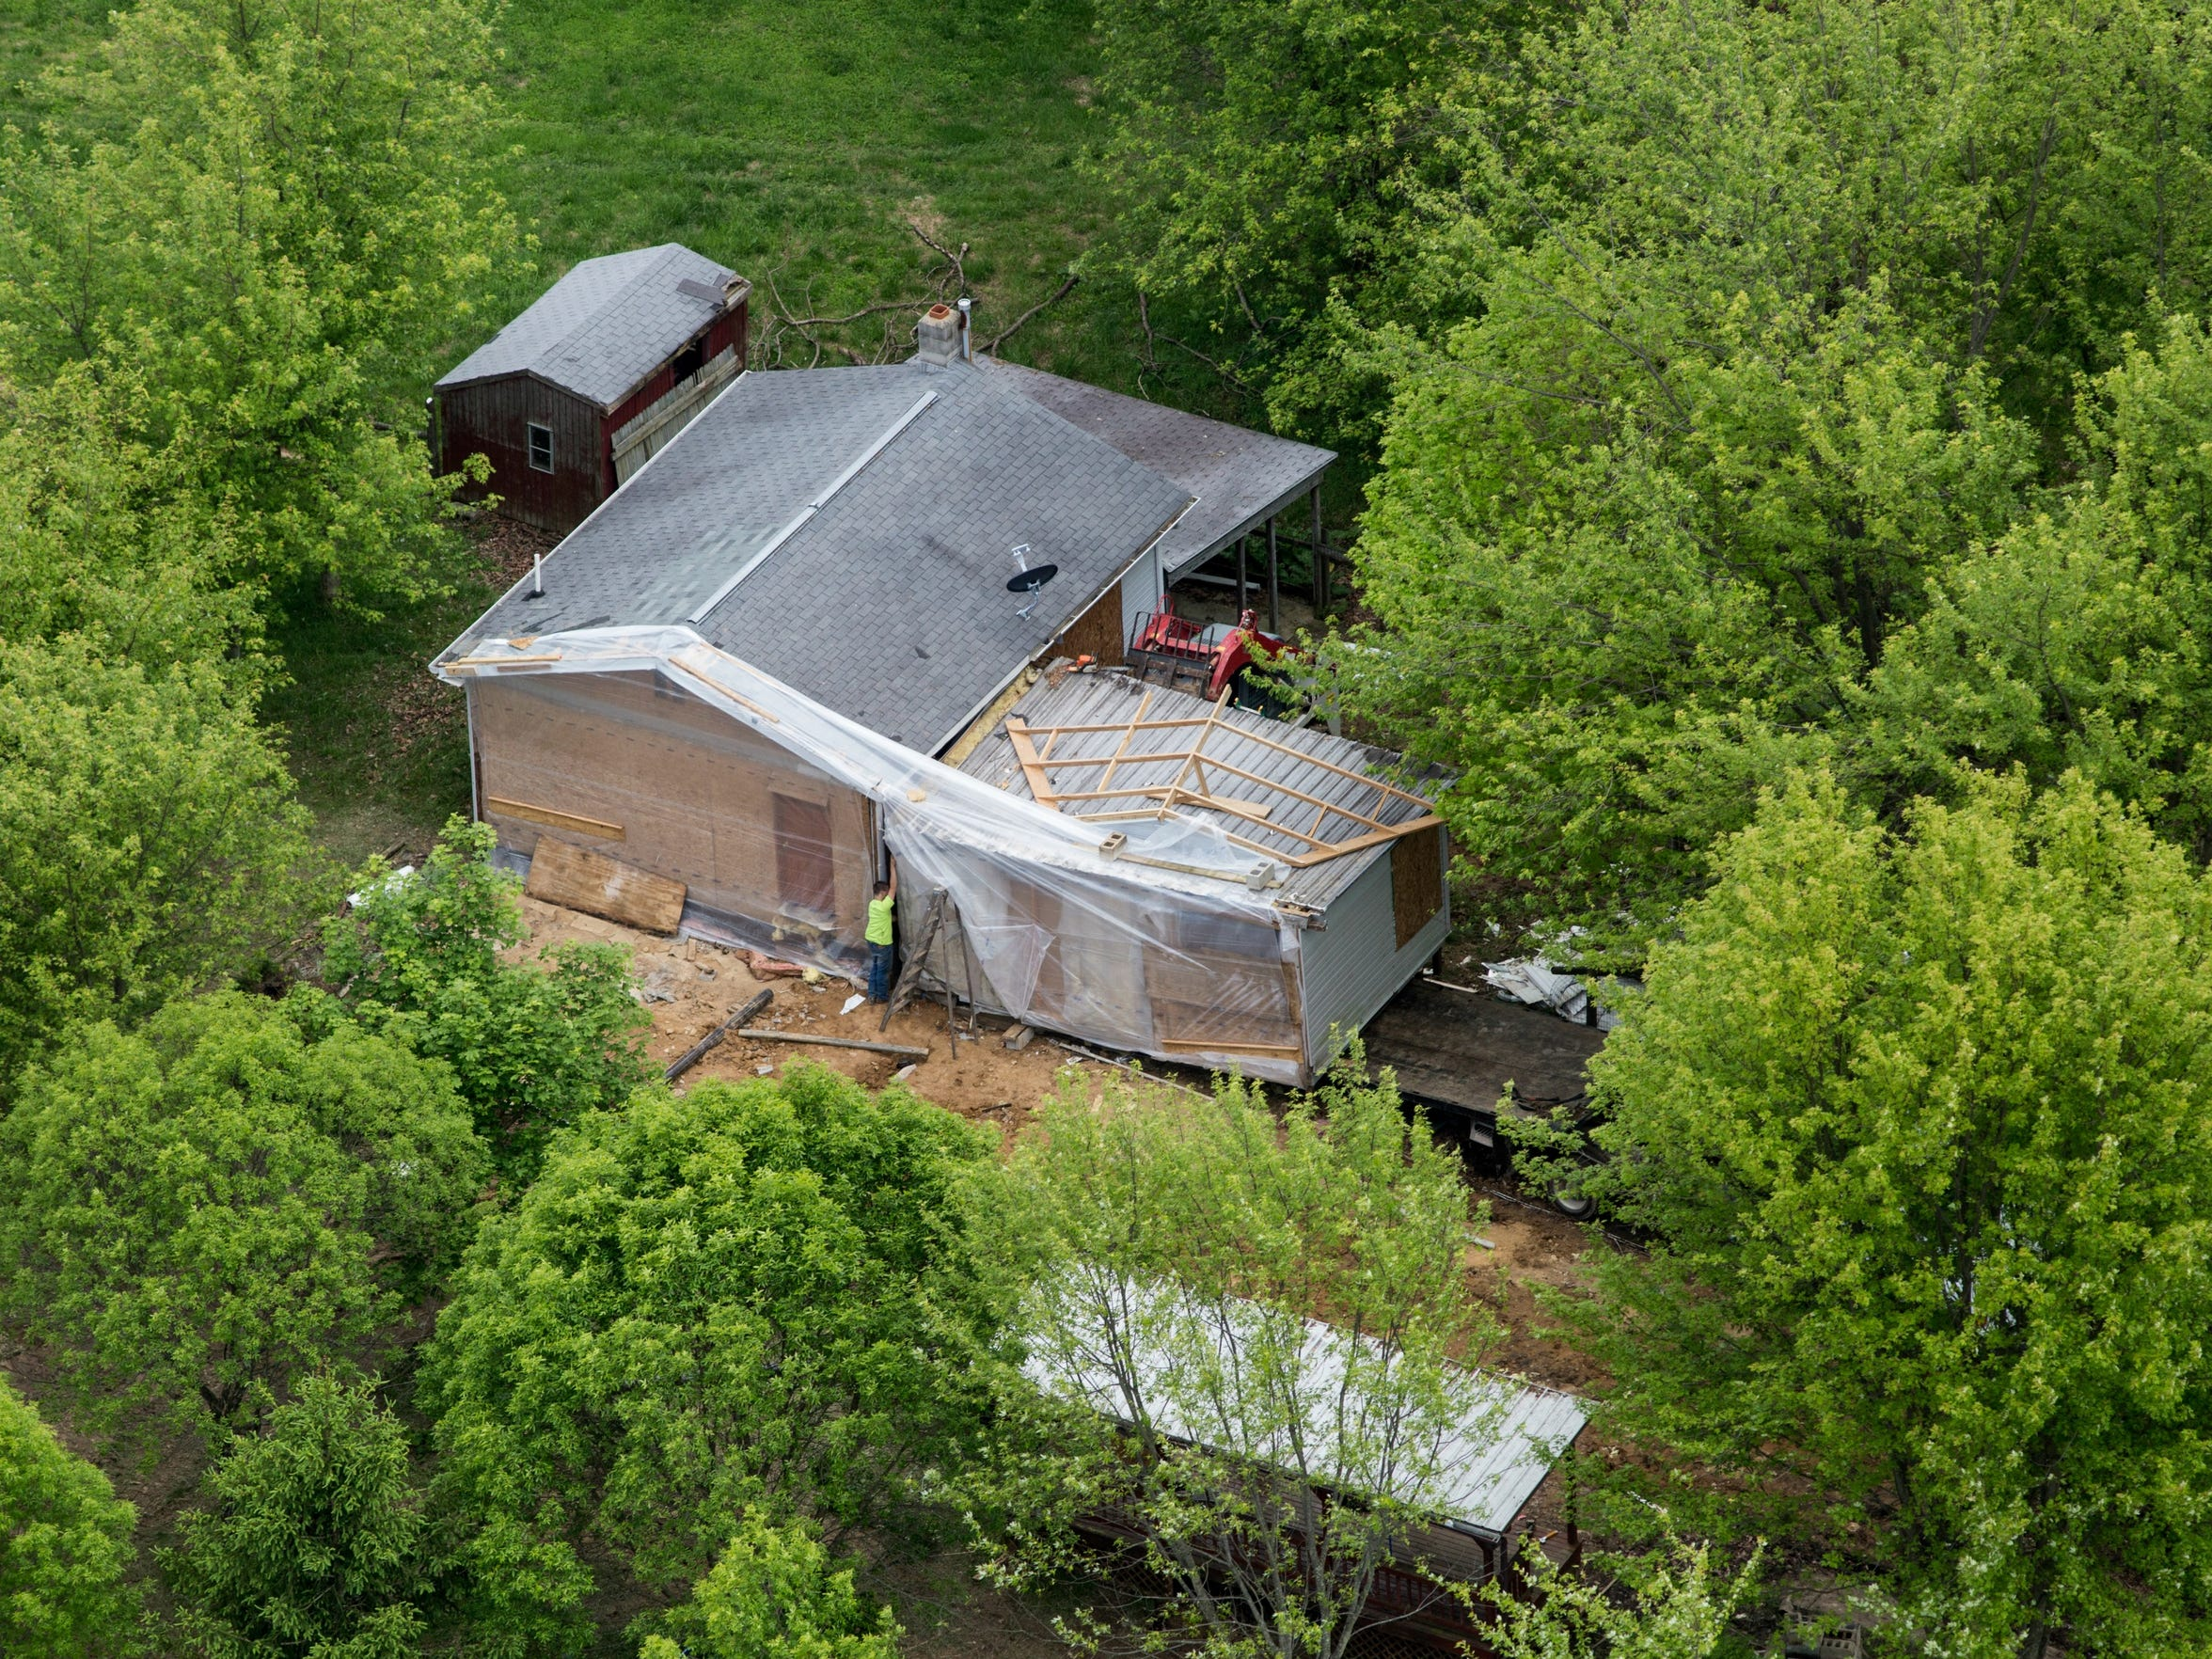 May 13, 2016: A man pictured below finishes securing the addition that was built onto the trailer in which Dana Rhoden and two of her children were killed April 22.